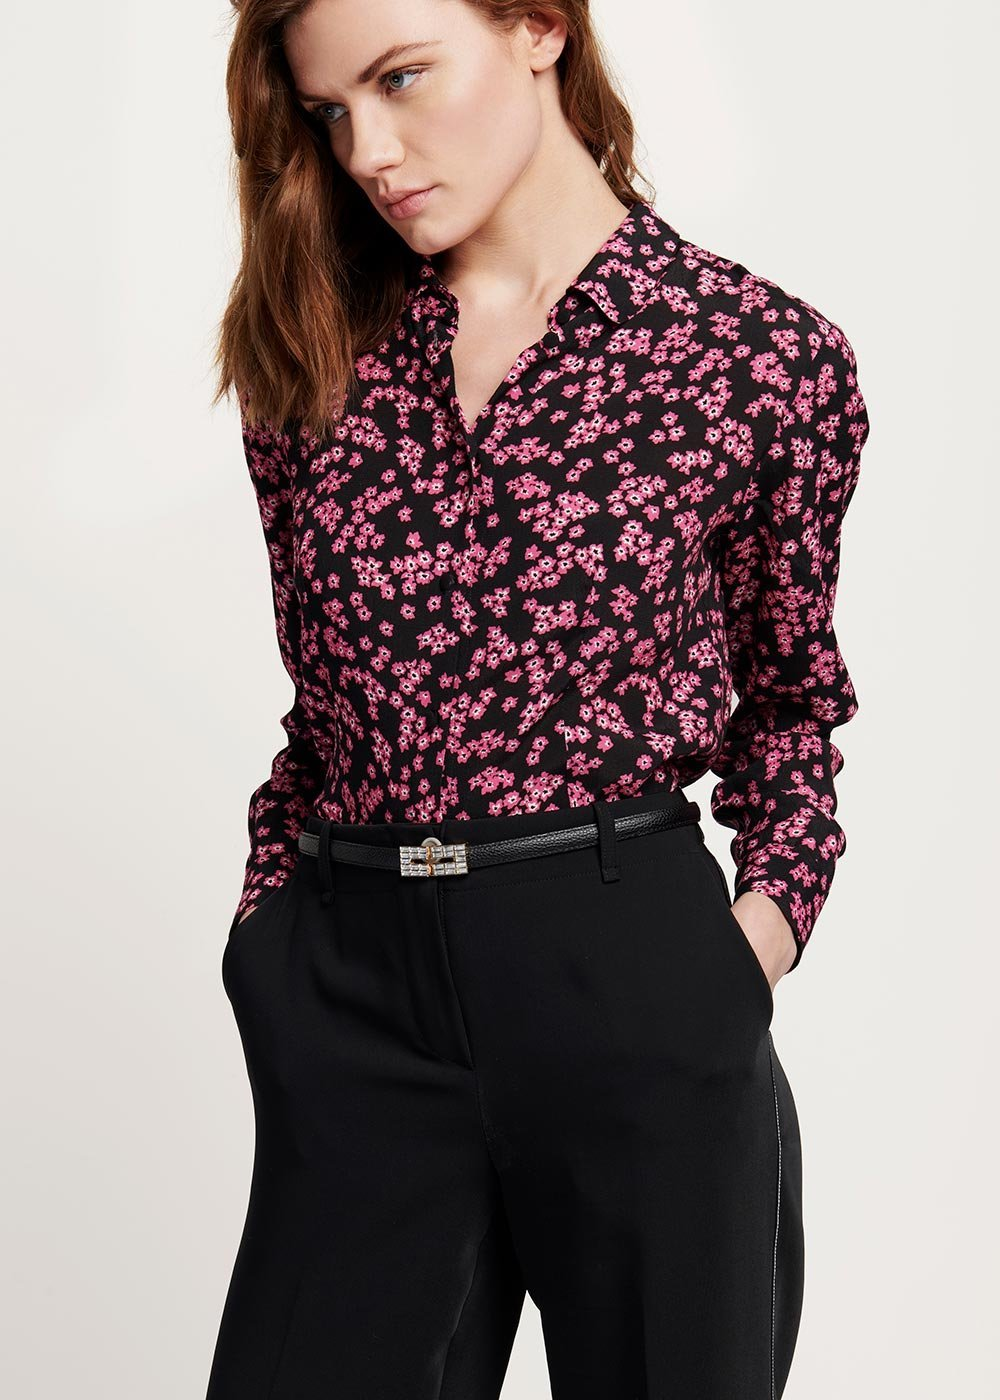 Alessia shirt with flower print - Black Gloss\Fantasia - Woman